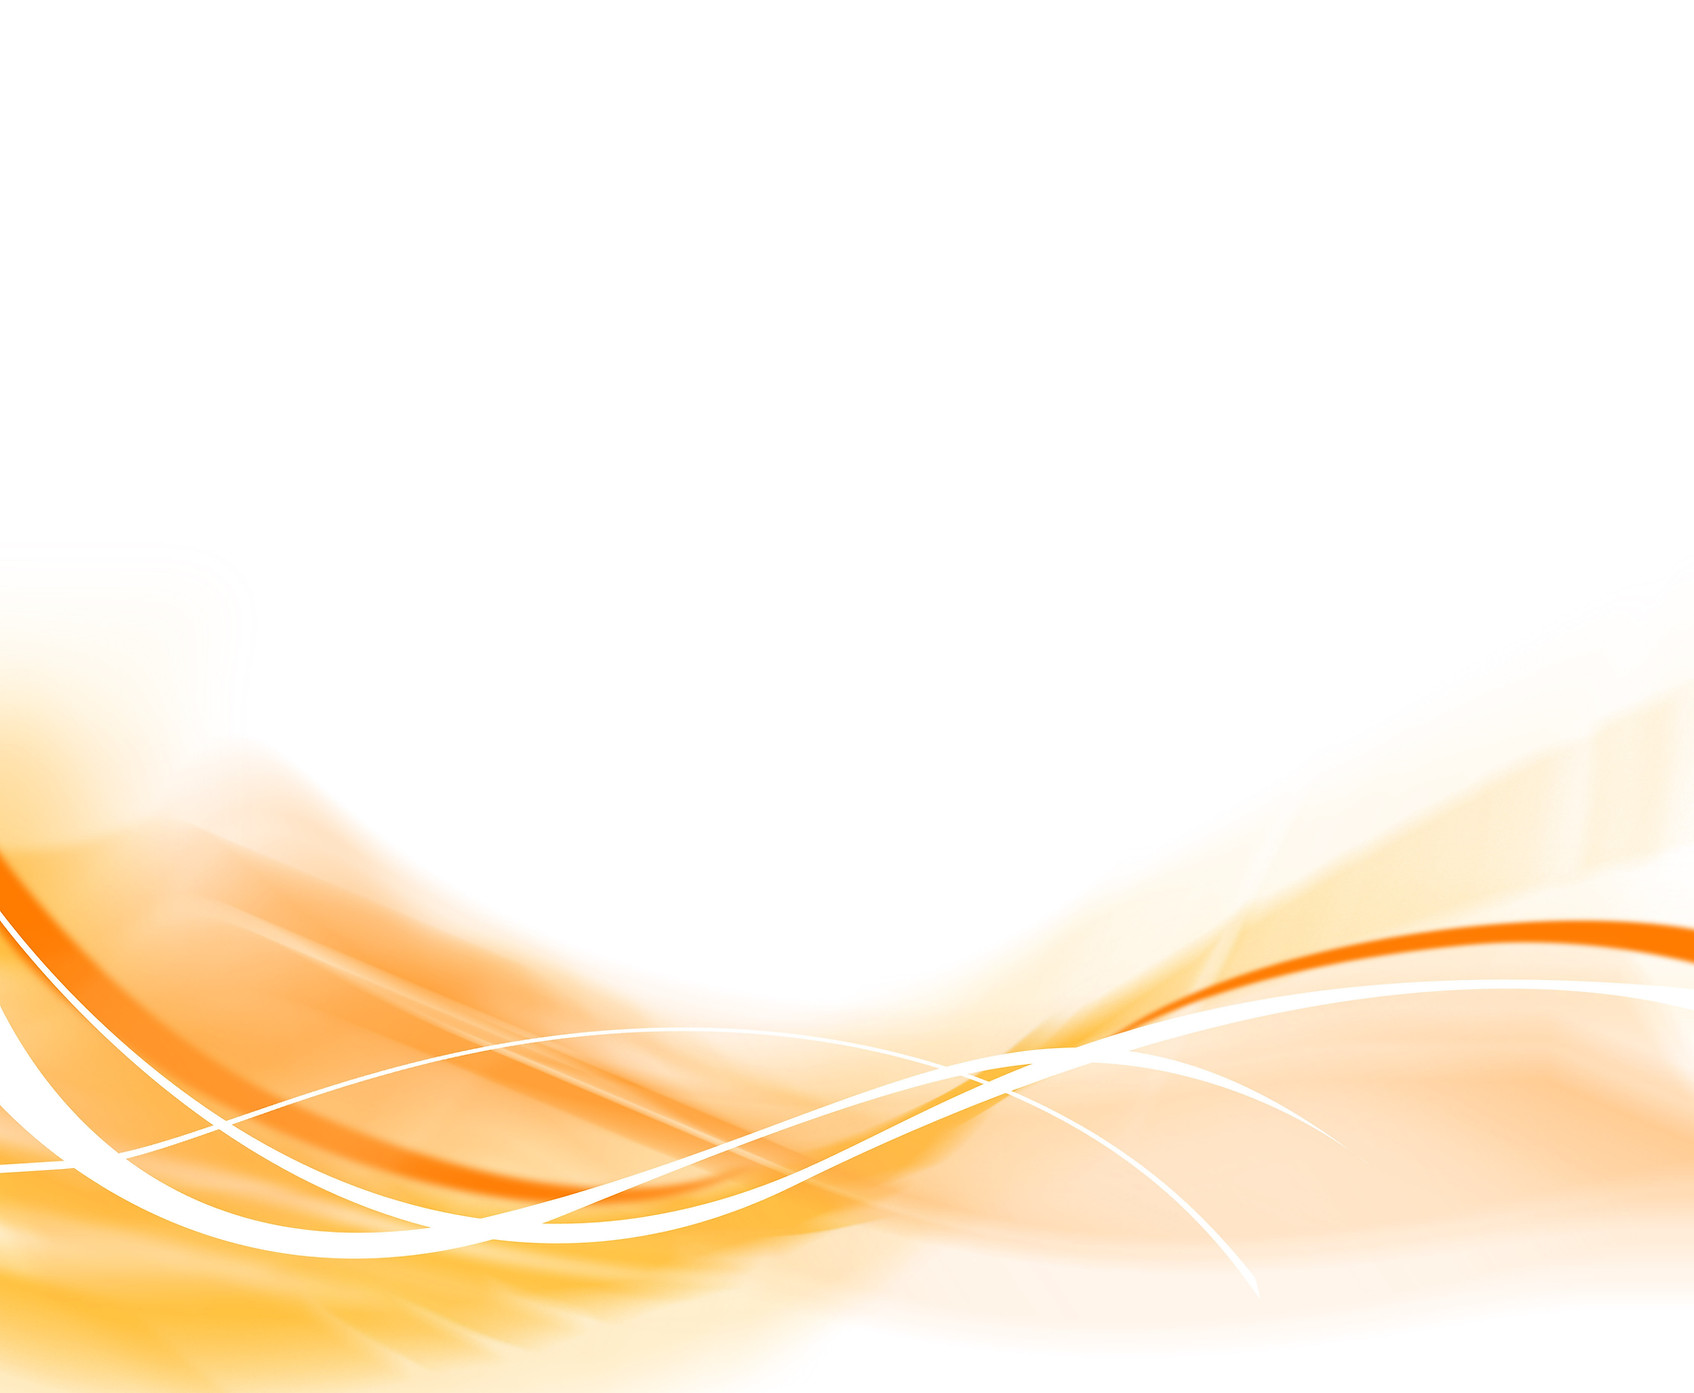 abstract background.jpg